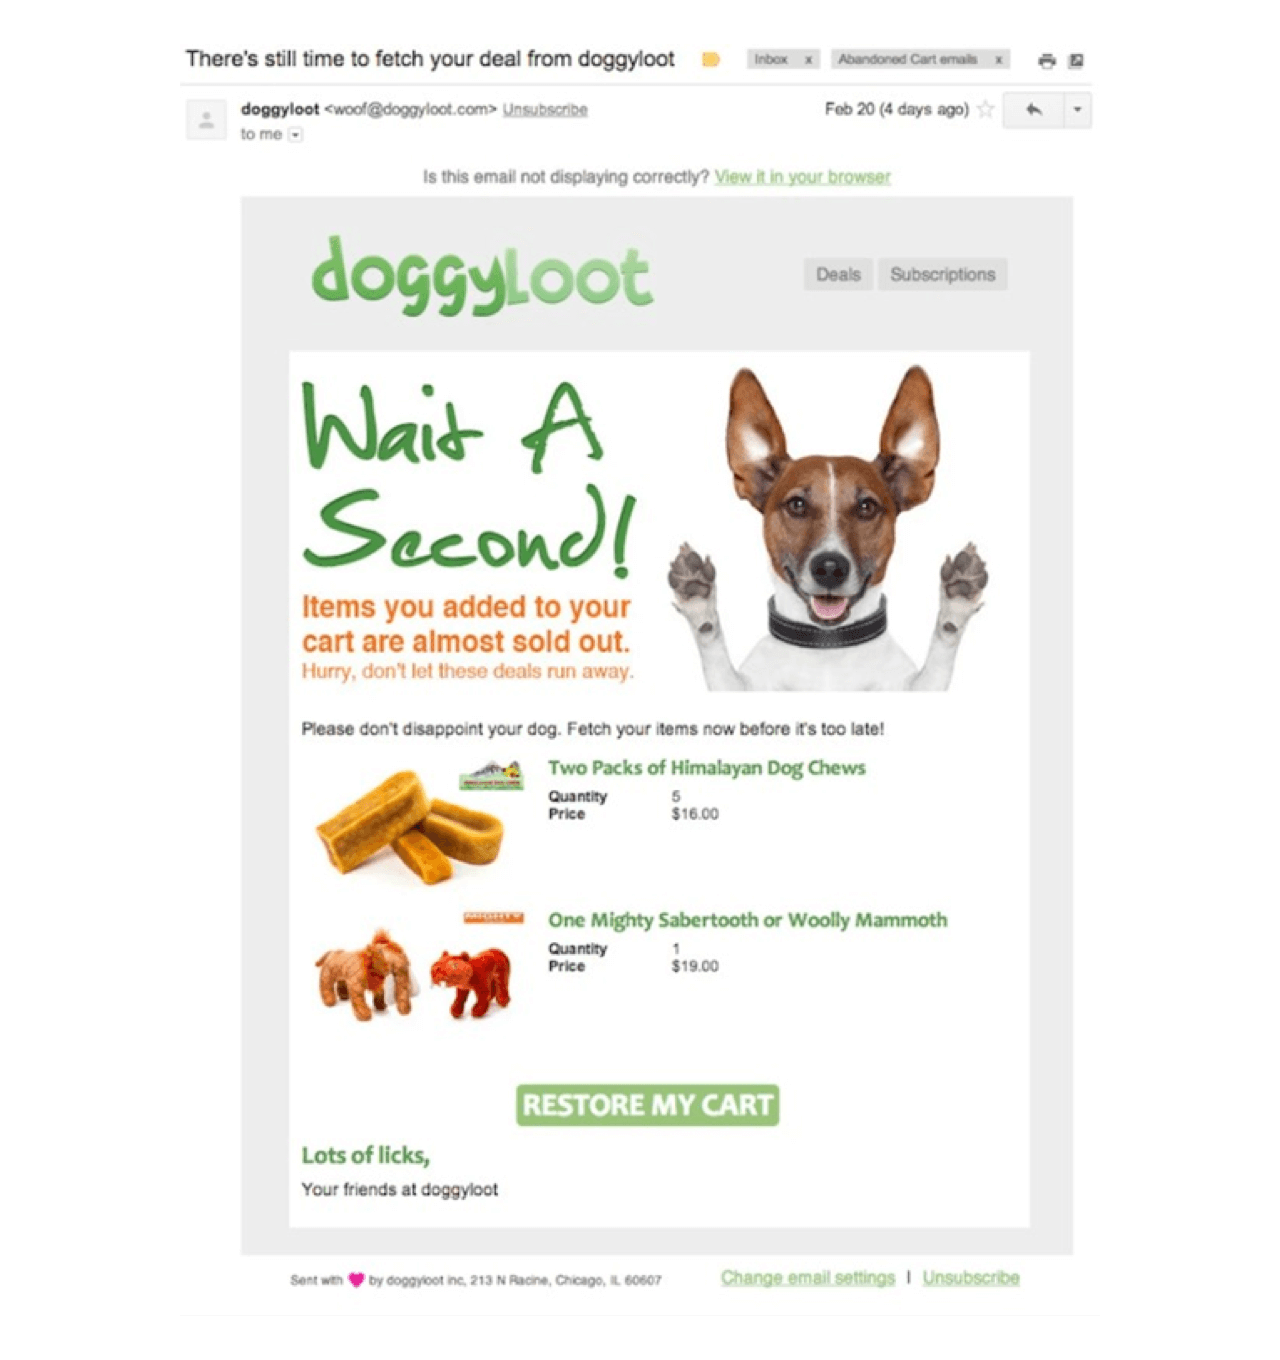 DoggyLoof abandoned cart email is clever and right in line with brand voice